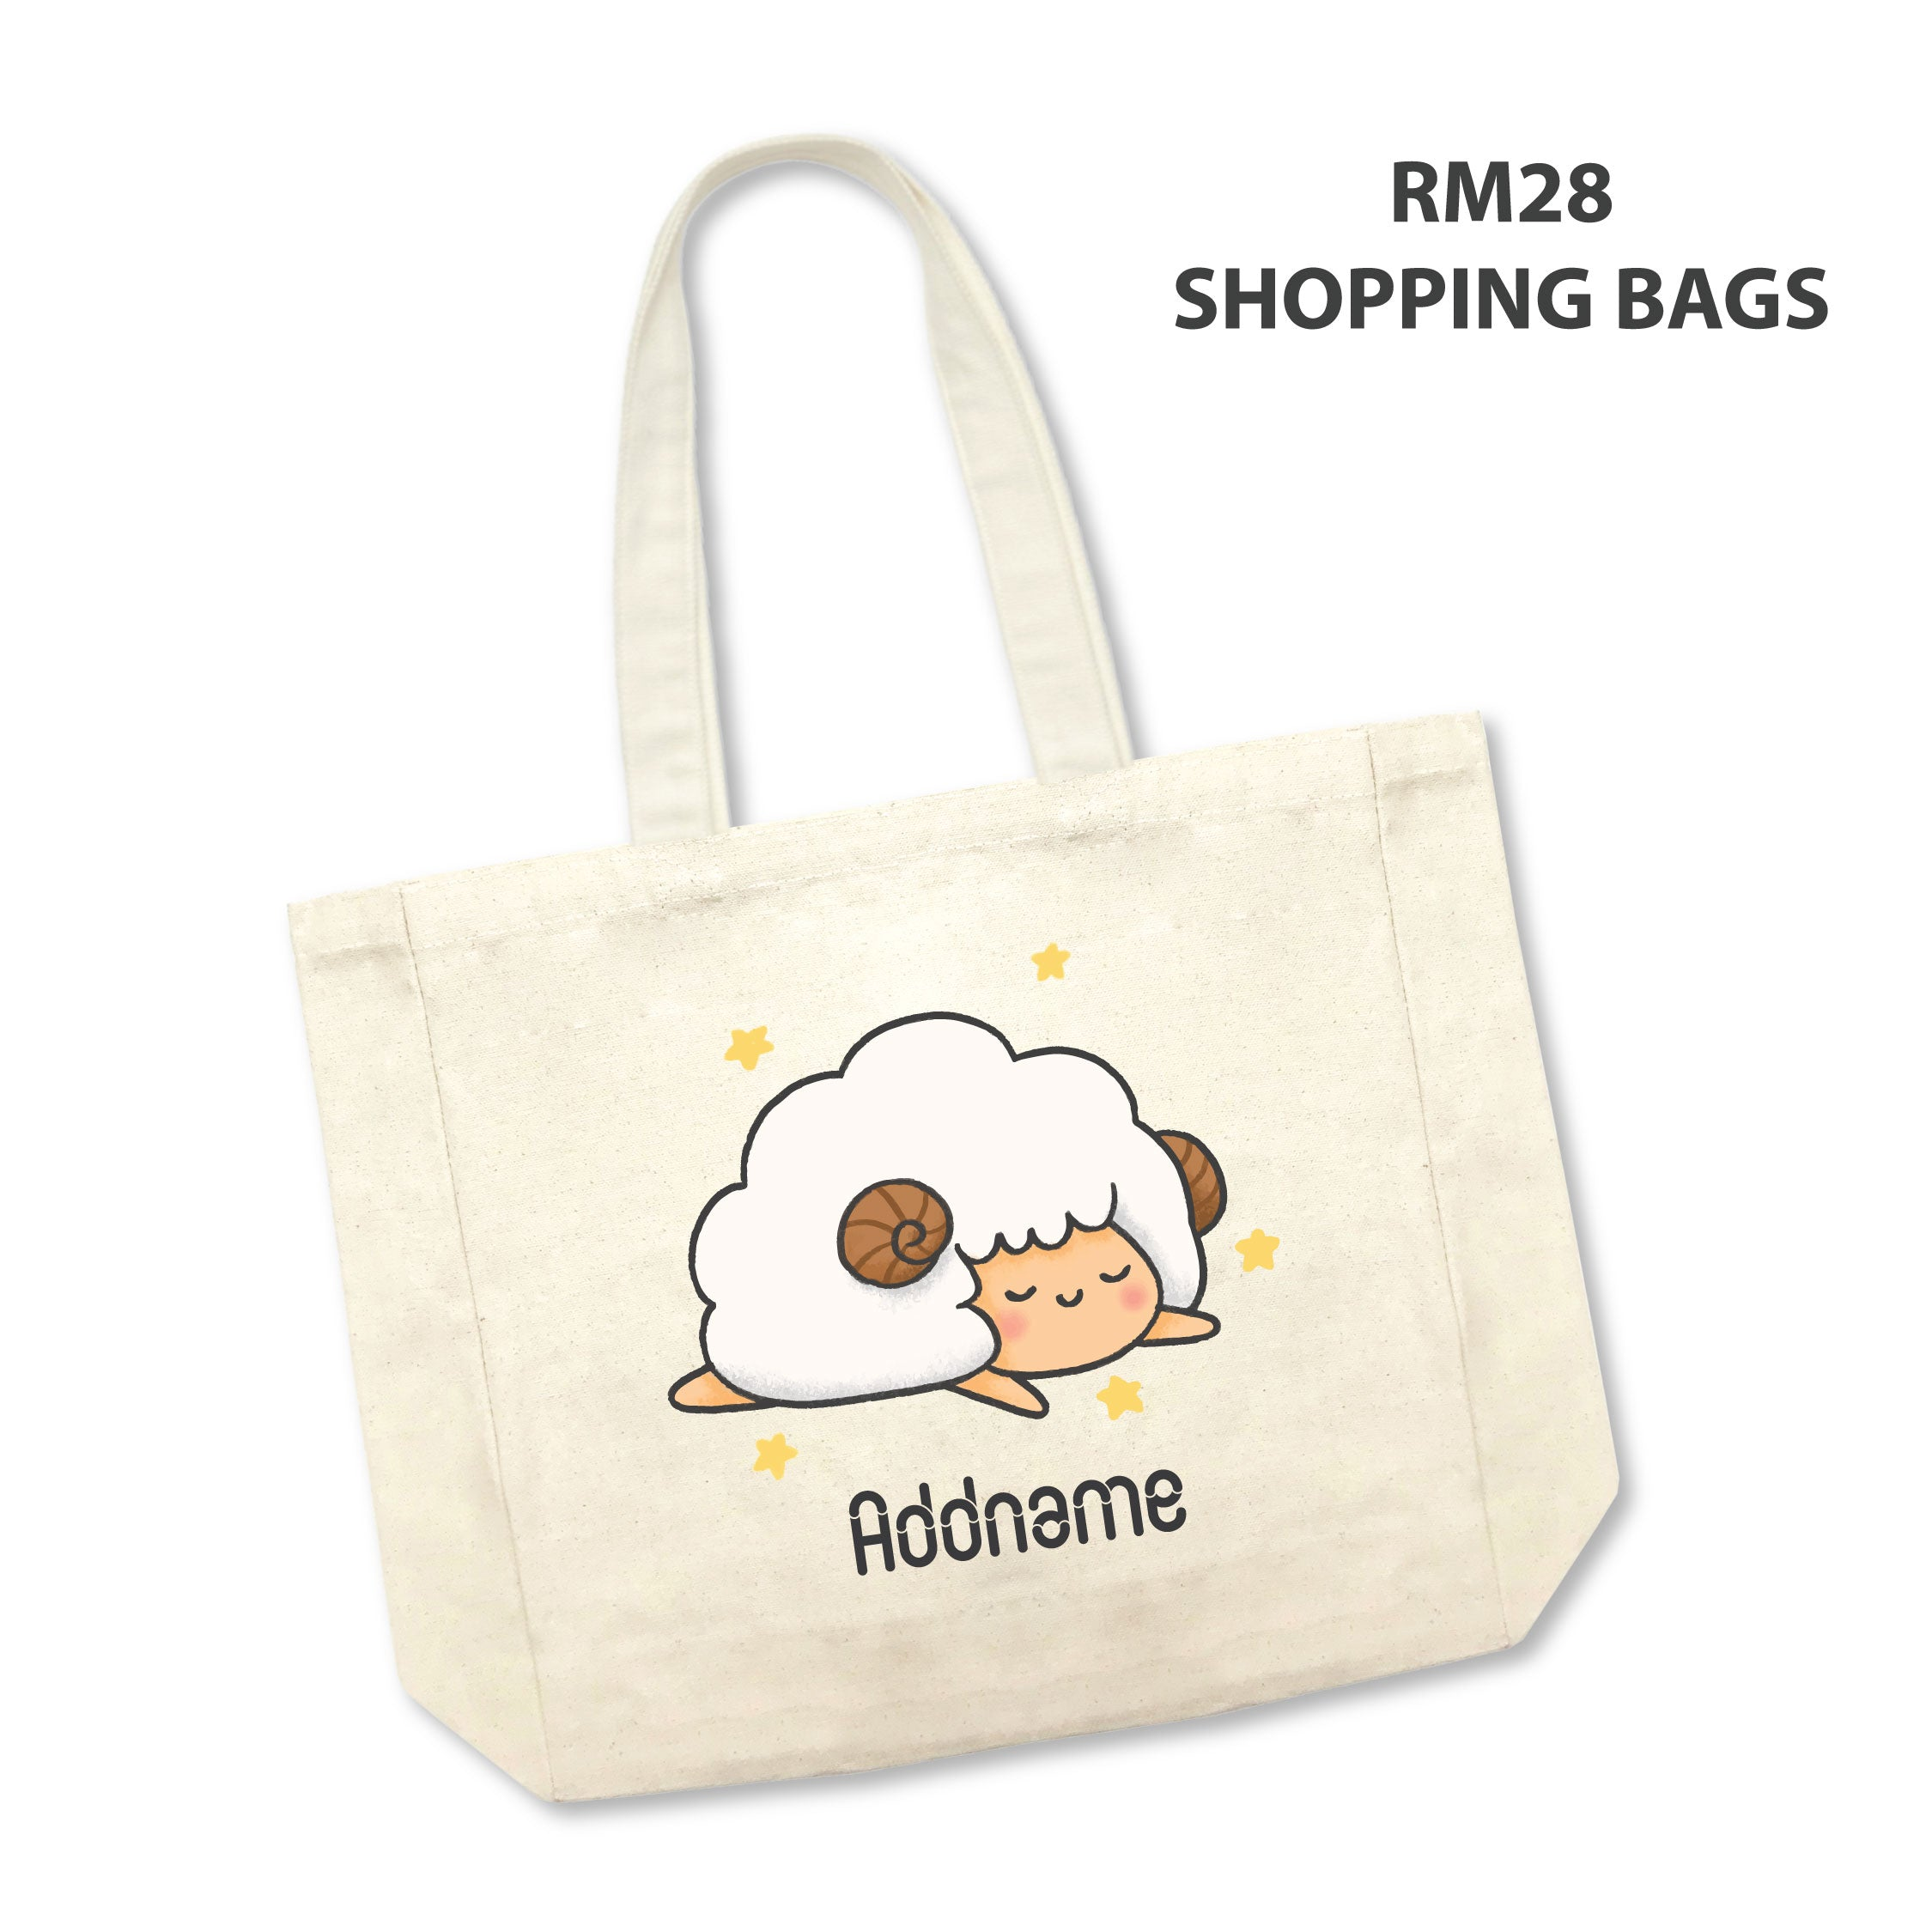 SHOPPING-BAG.jpg